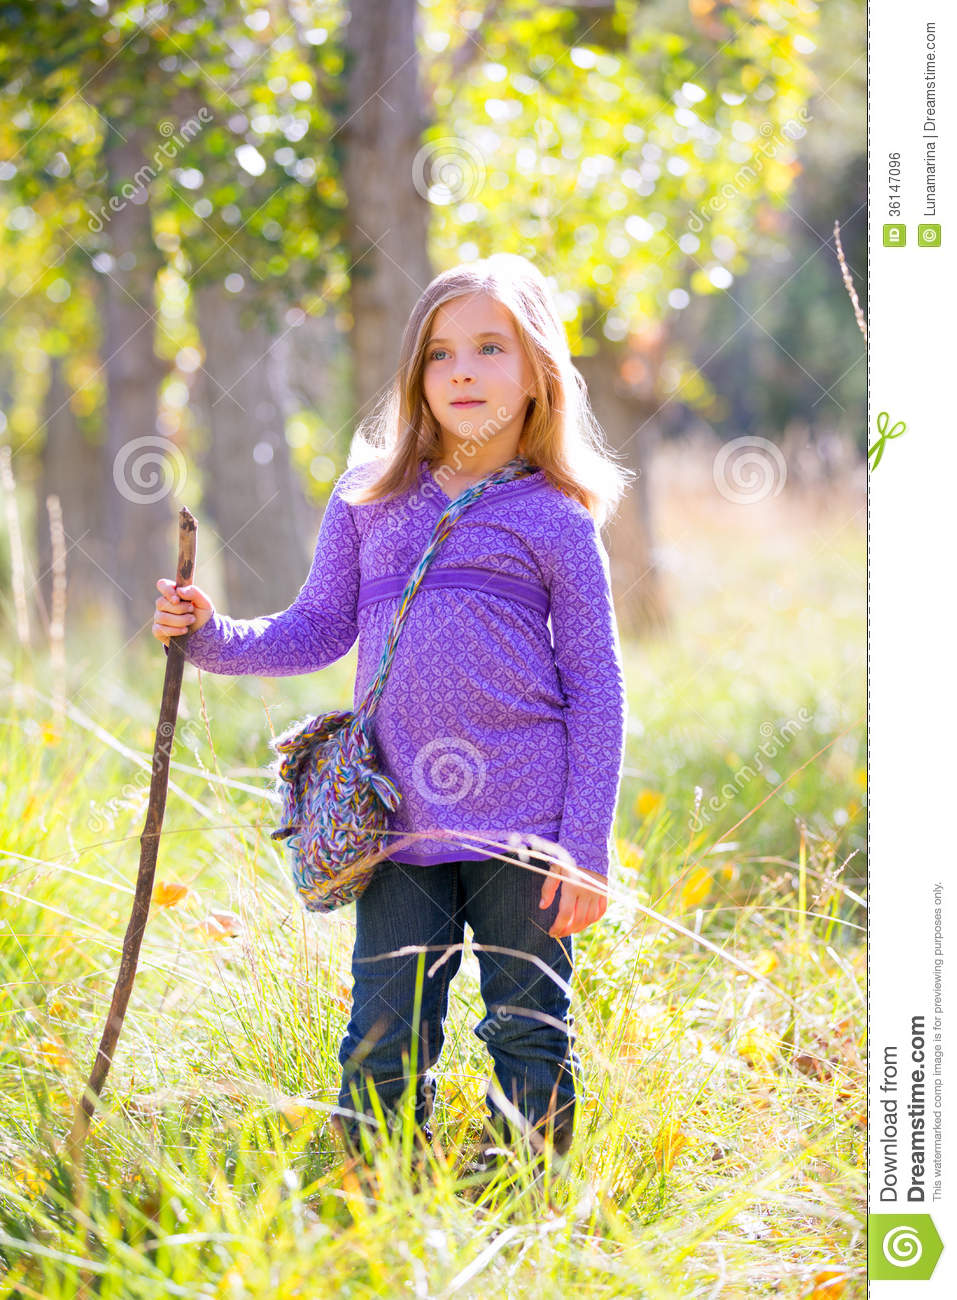 hiking kid girl with walking stick in autum poplar forest stock photo image of country. Black Bedroom Furniture Sets. Home Design Ideas